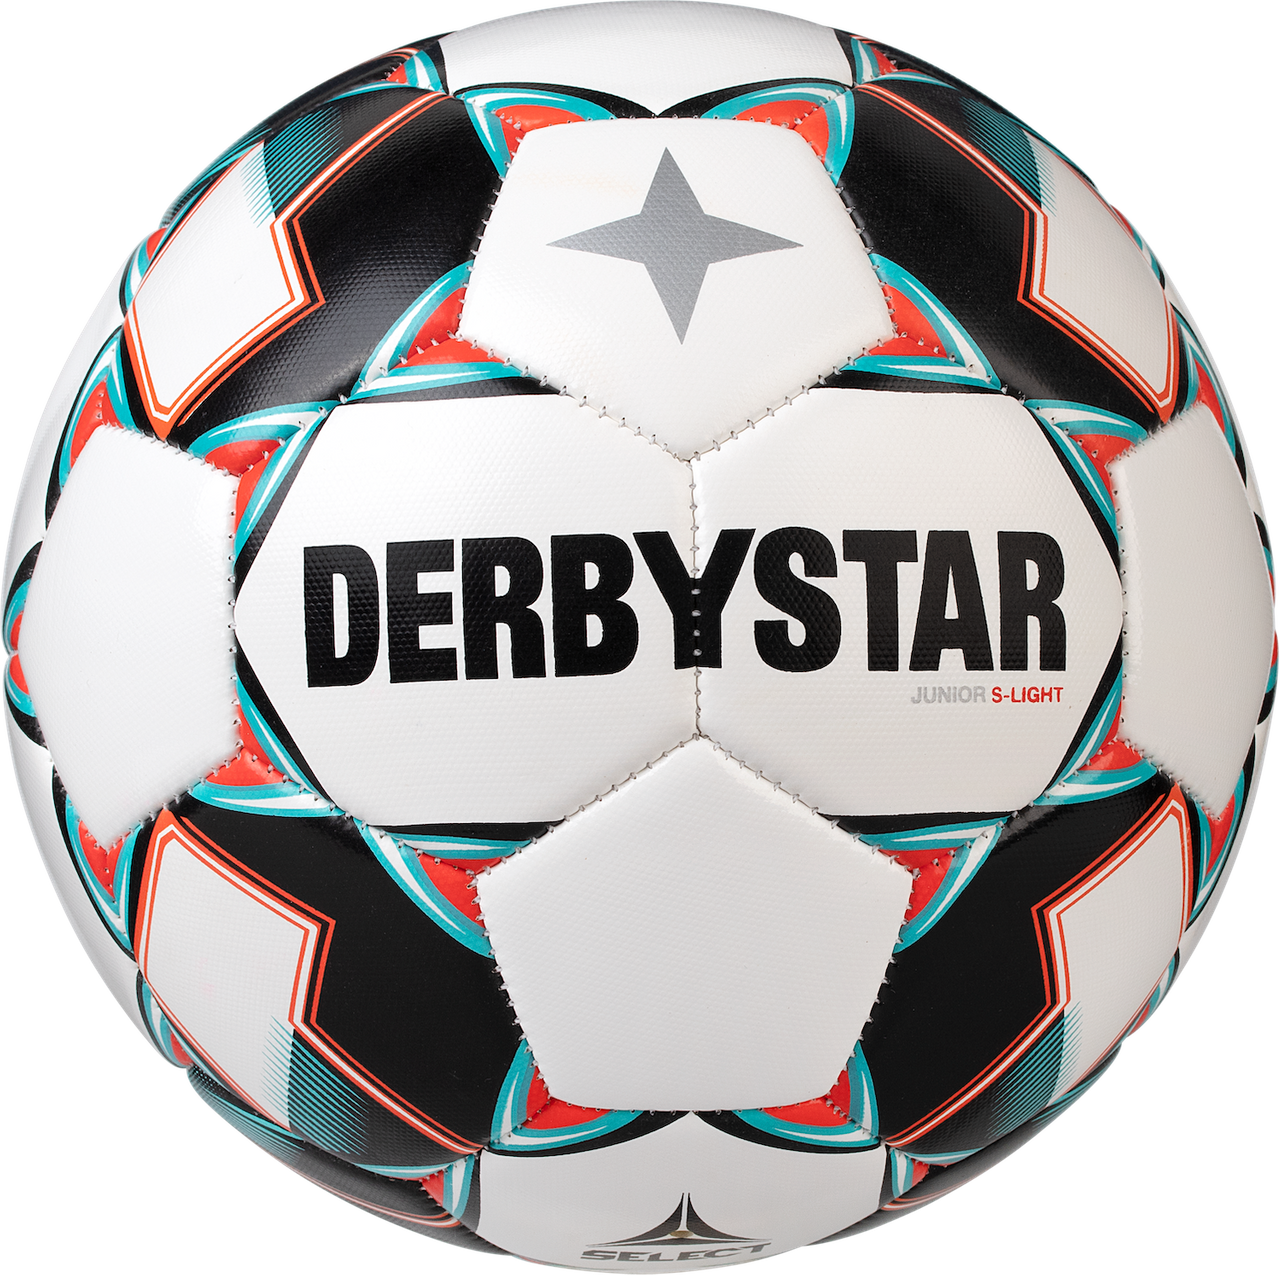 DERBYSTAR Jugendball - JUNIOR S-LIGHT